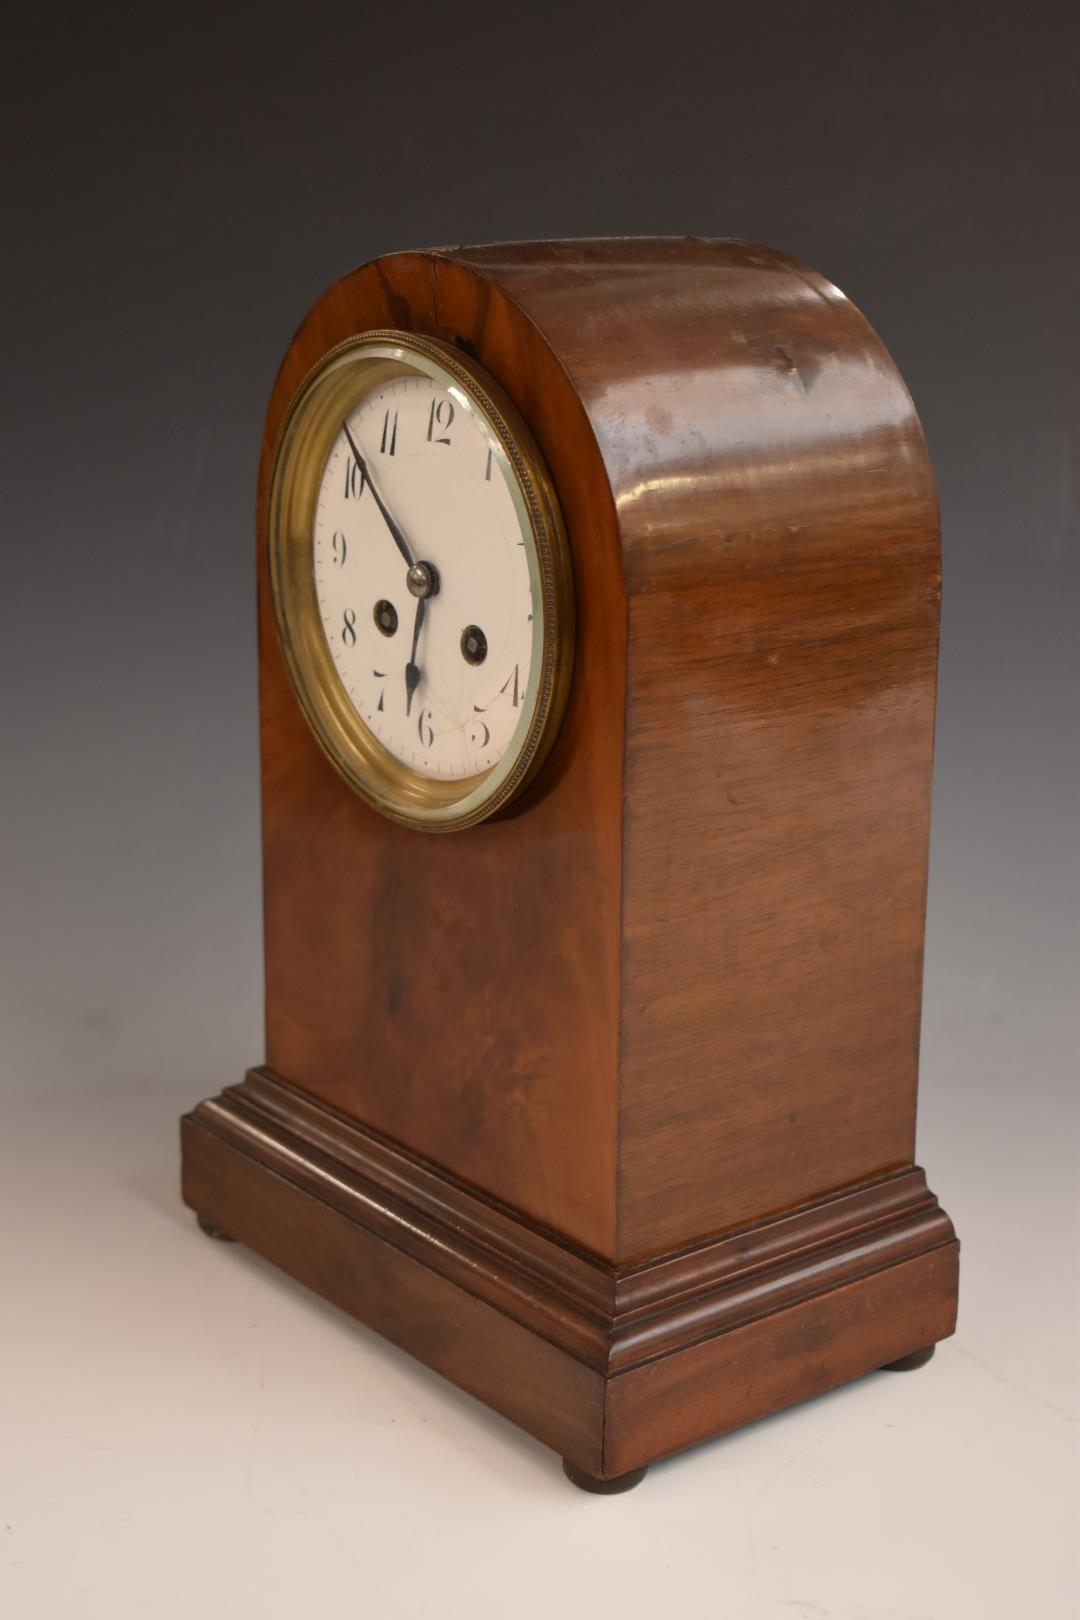 A c1900 mahogany carved arch top mantel clock, the anonymous two train movement stamped 3000, 52, - Image 3 of 5